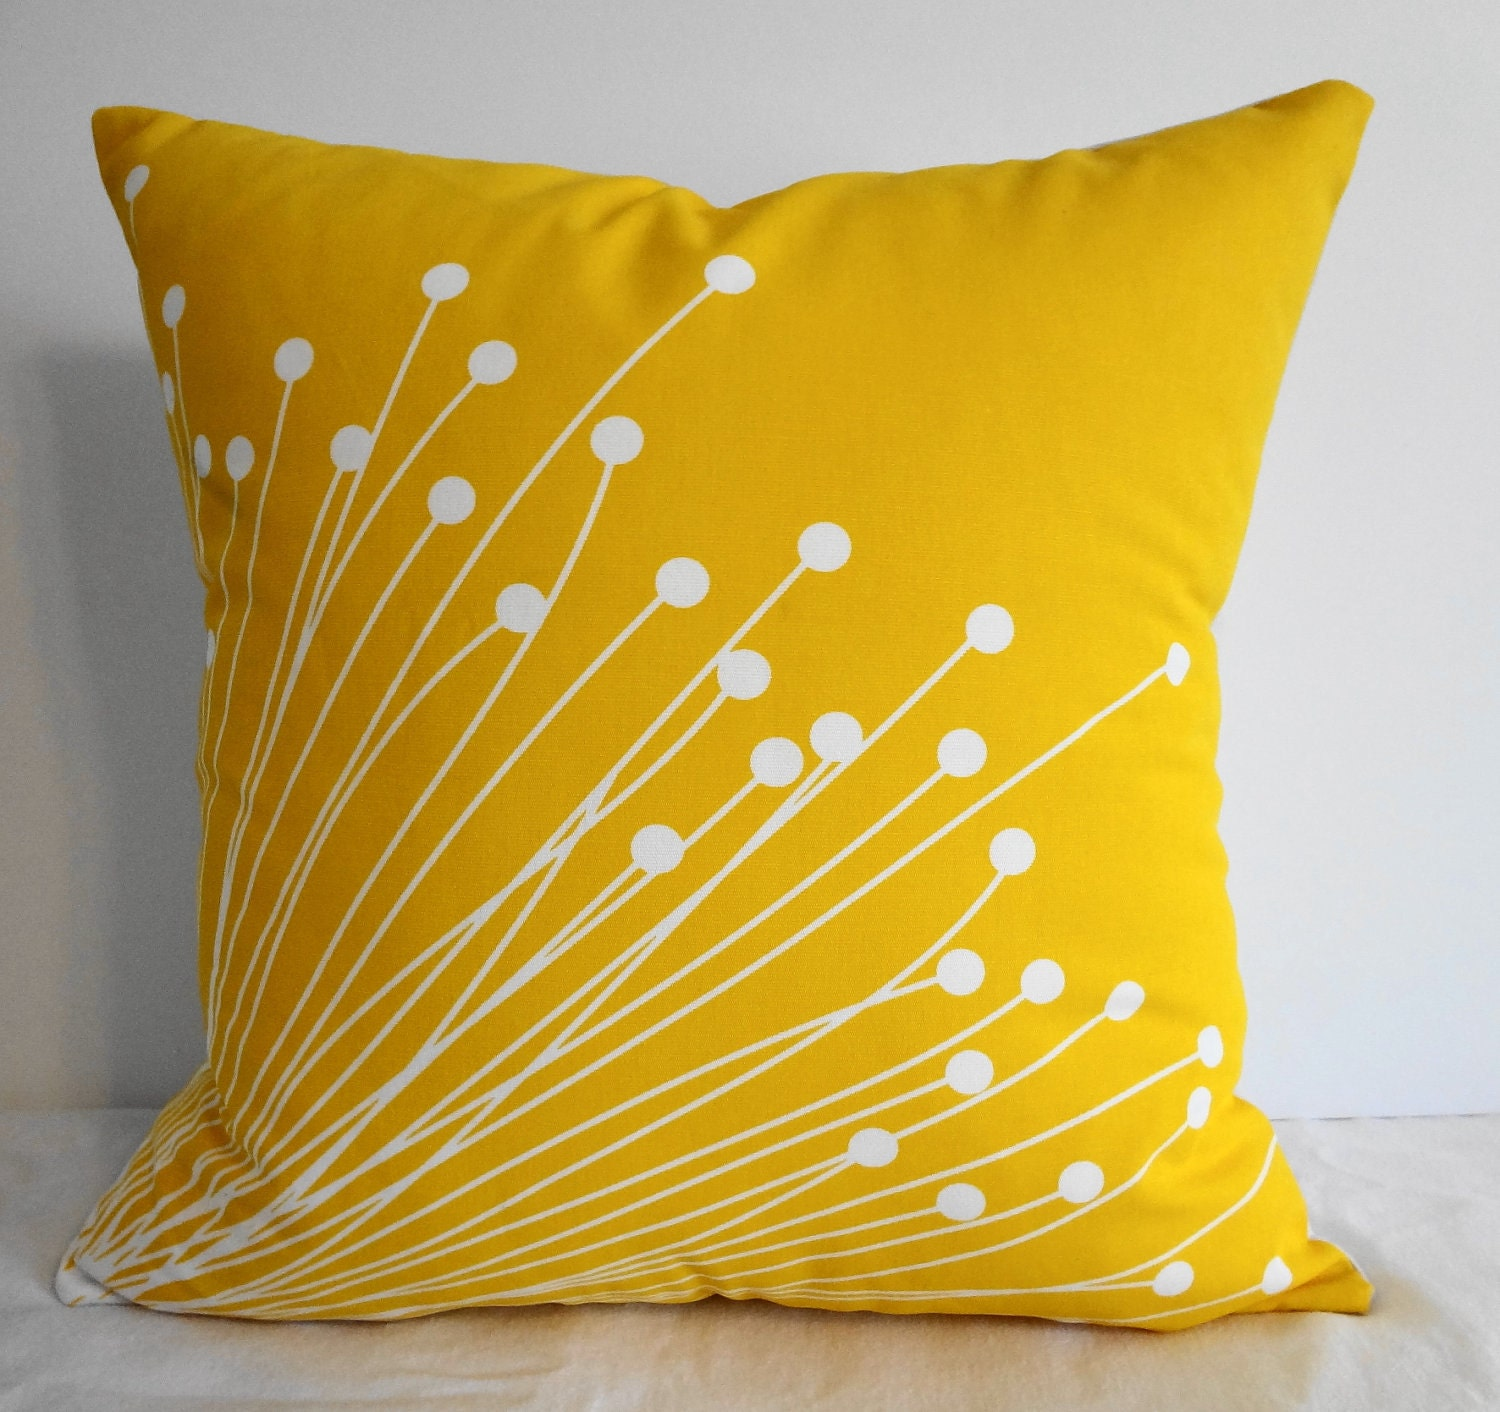 Throw Pillows With Covers : Starburst Yellow Pillow Covers Decorative Throw Pillow